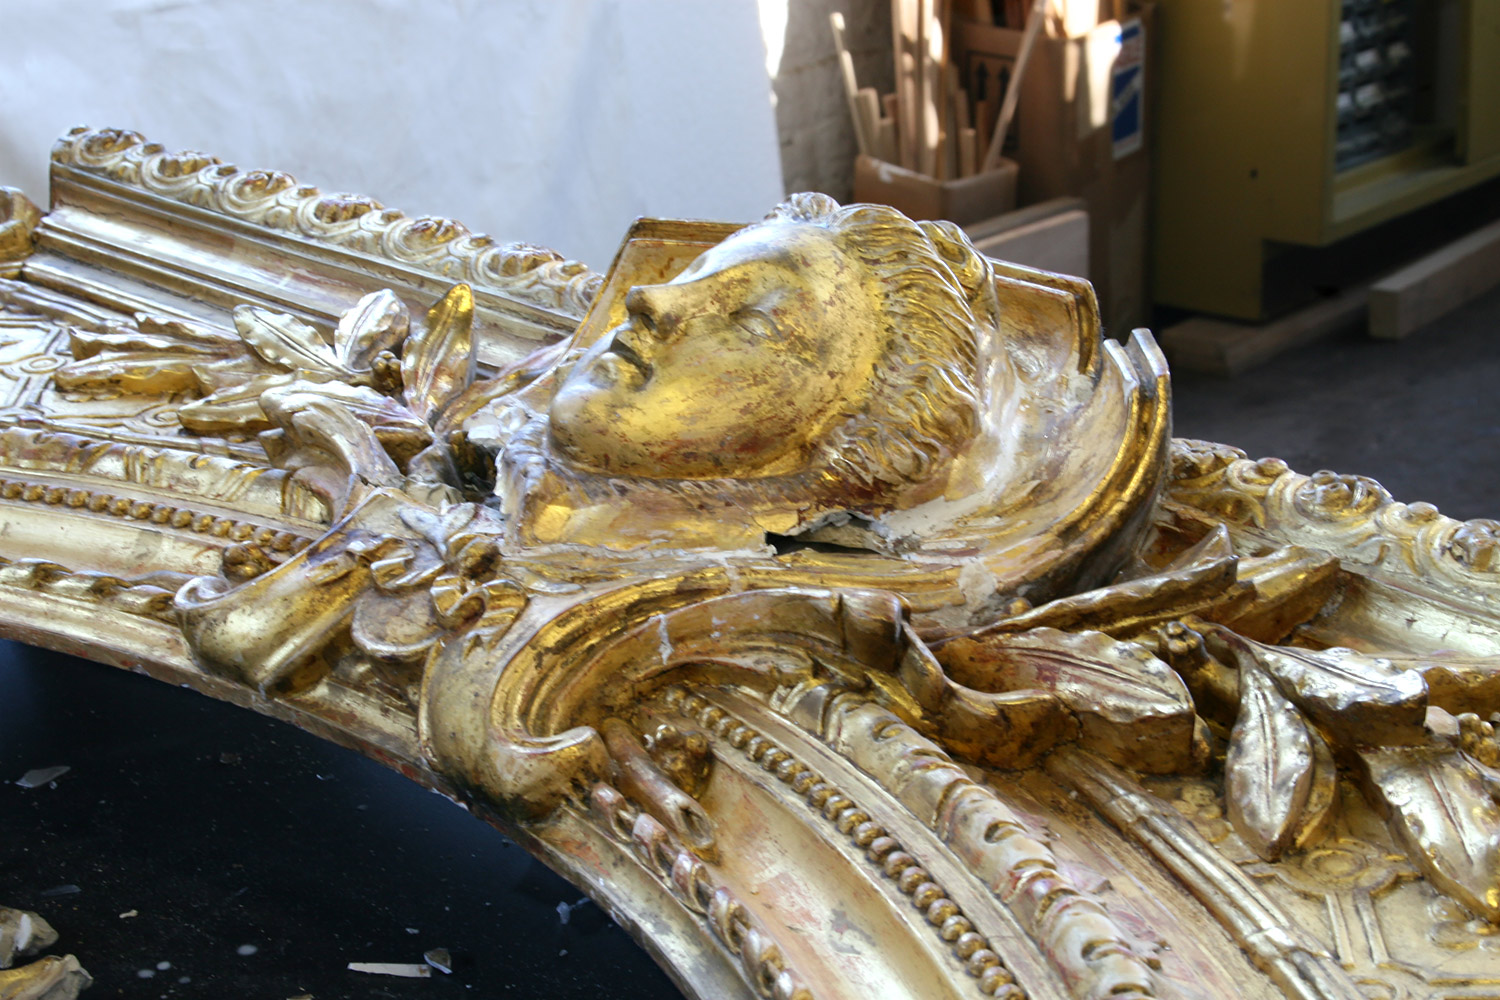 During treatment: Reattaching detached and shattered gilt sculptural element